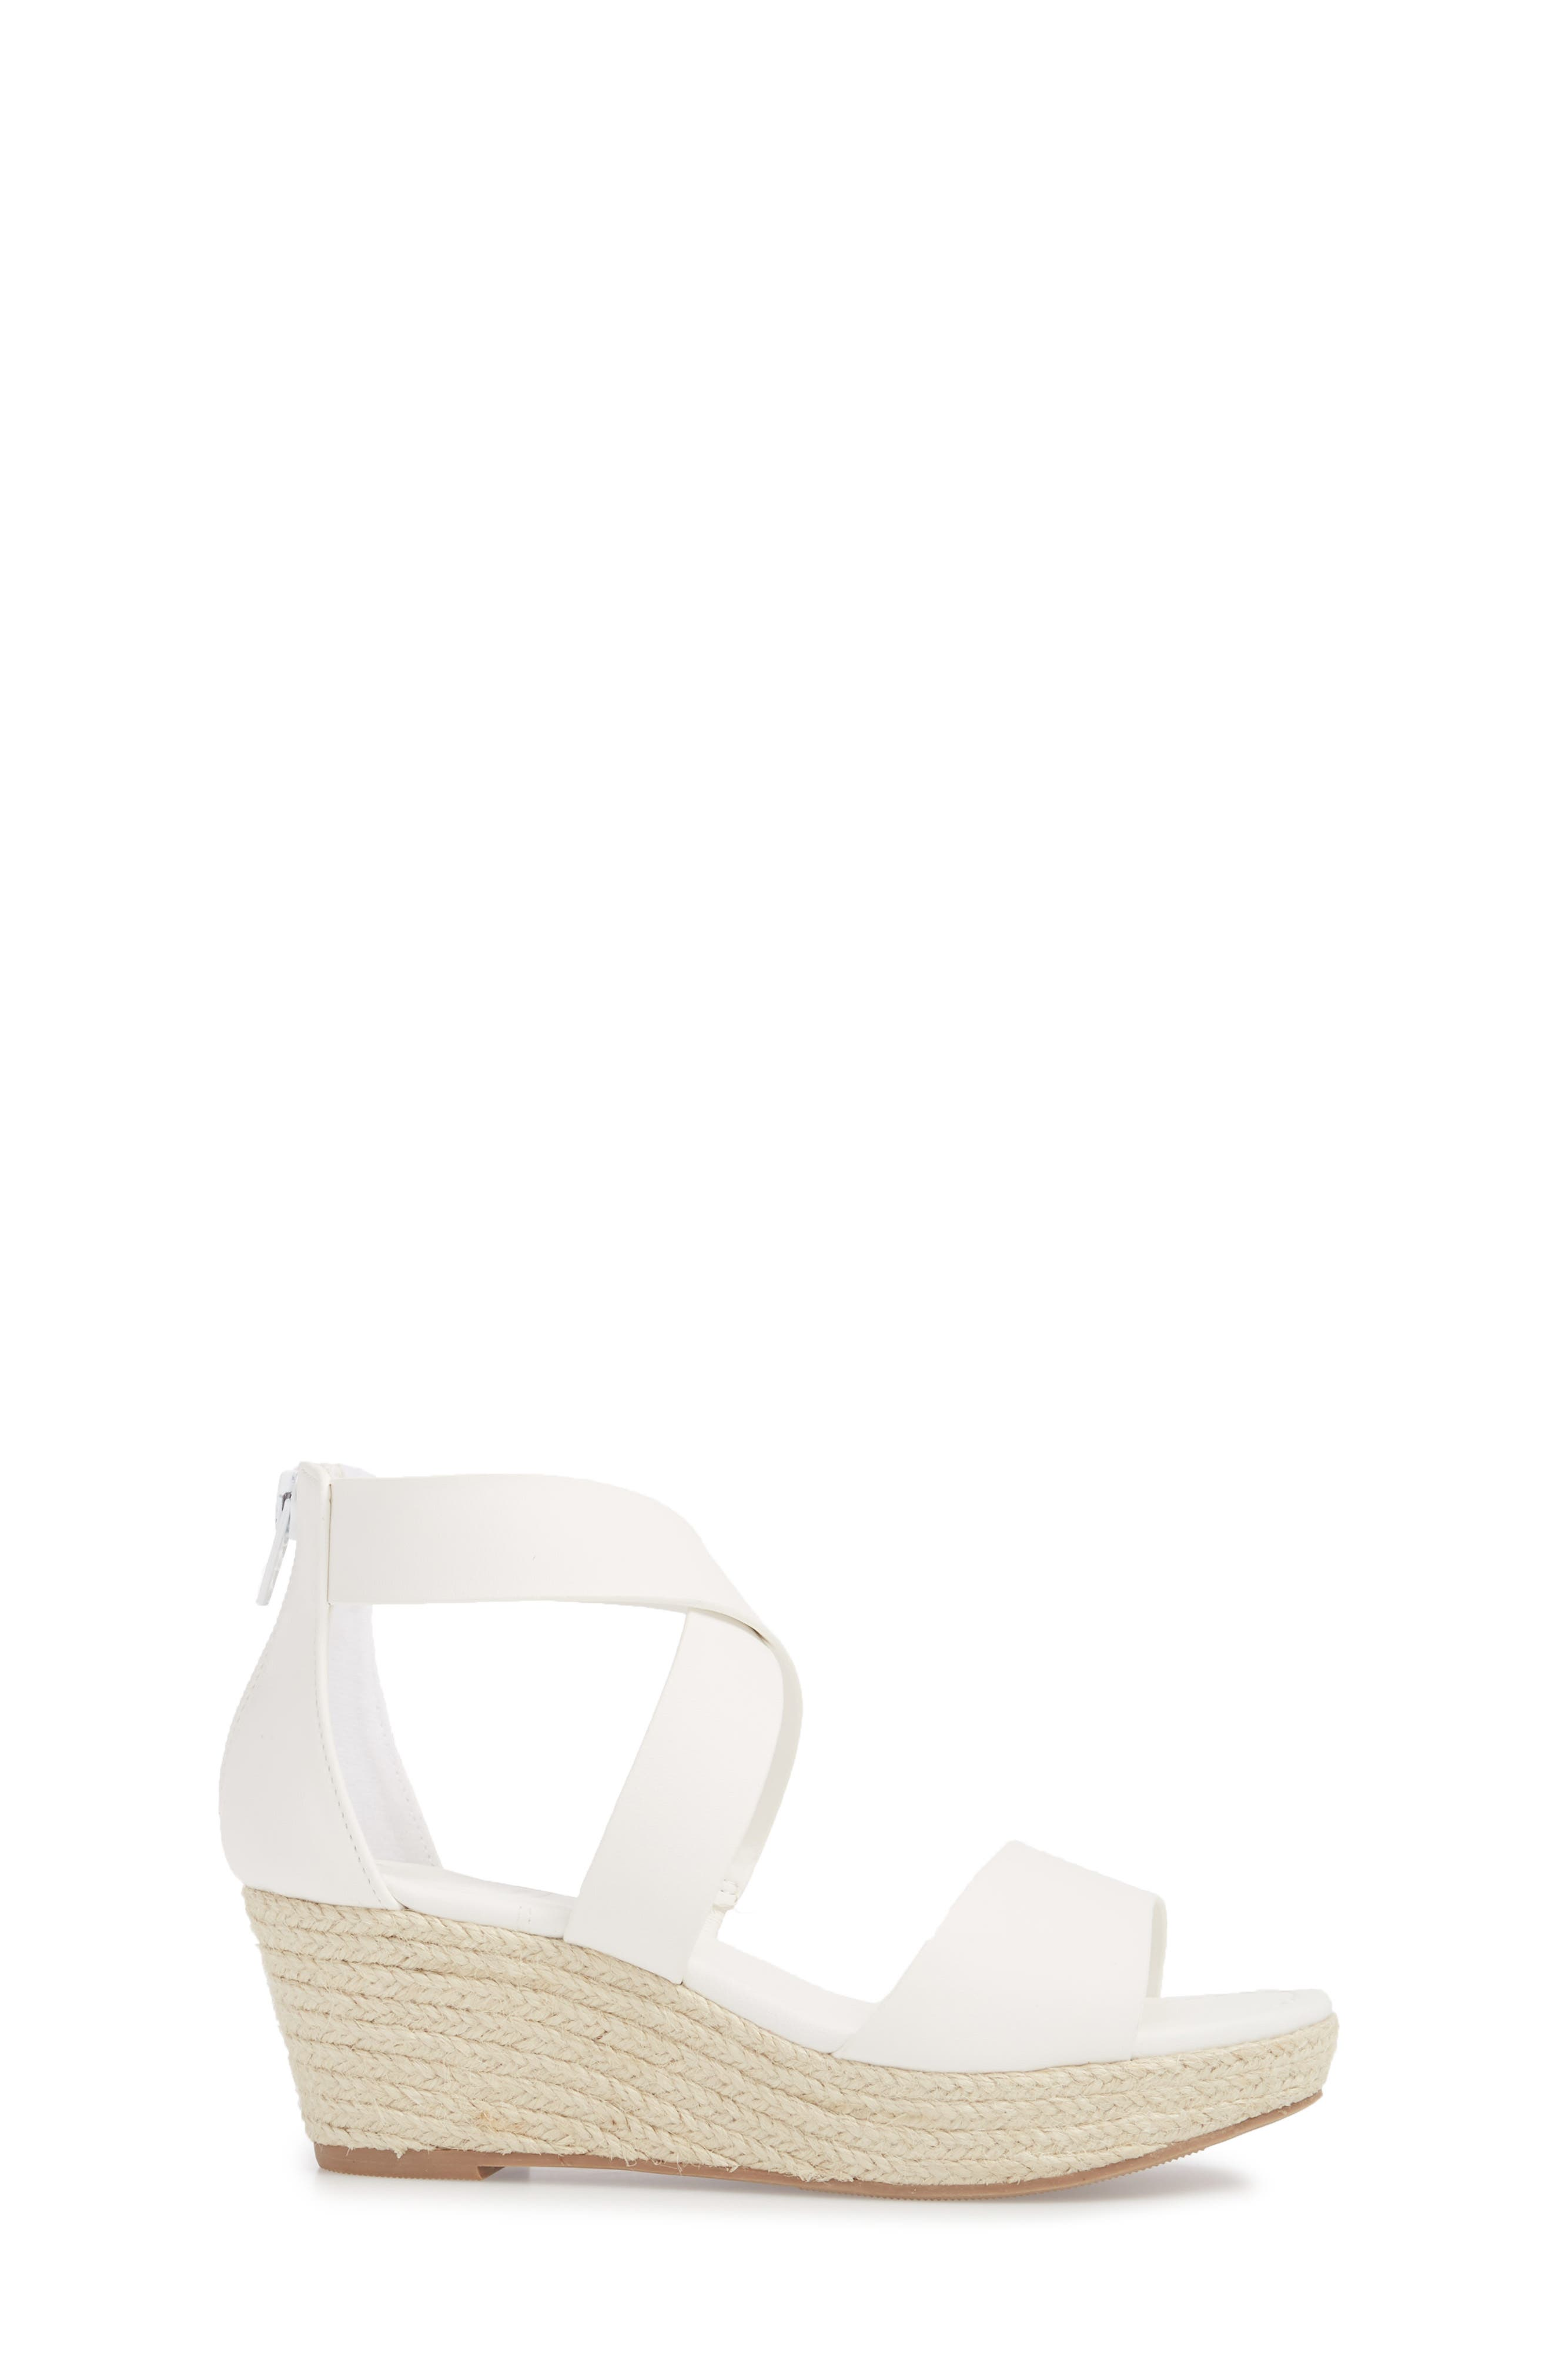 DOLCE VITA,                             Wilma Platform Wedge Sandal,                             Alternate thumbnail 3, color,                             100